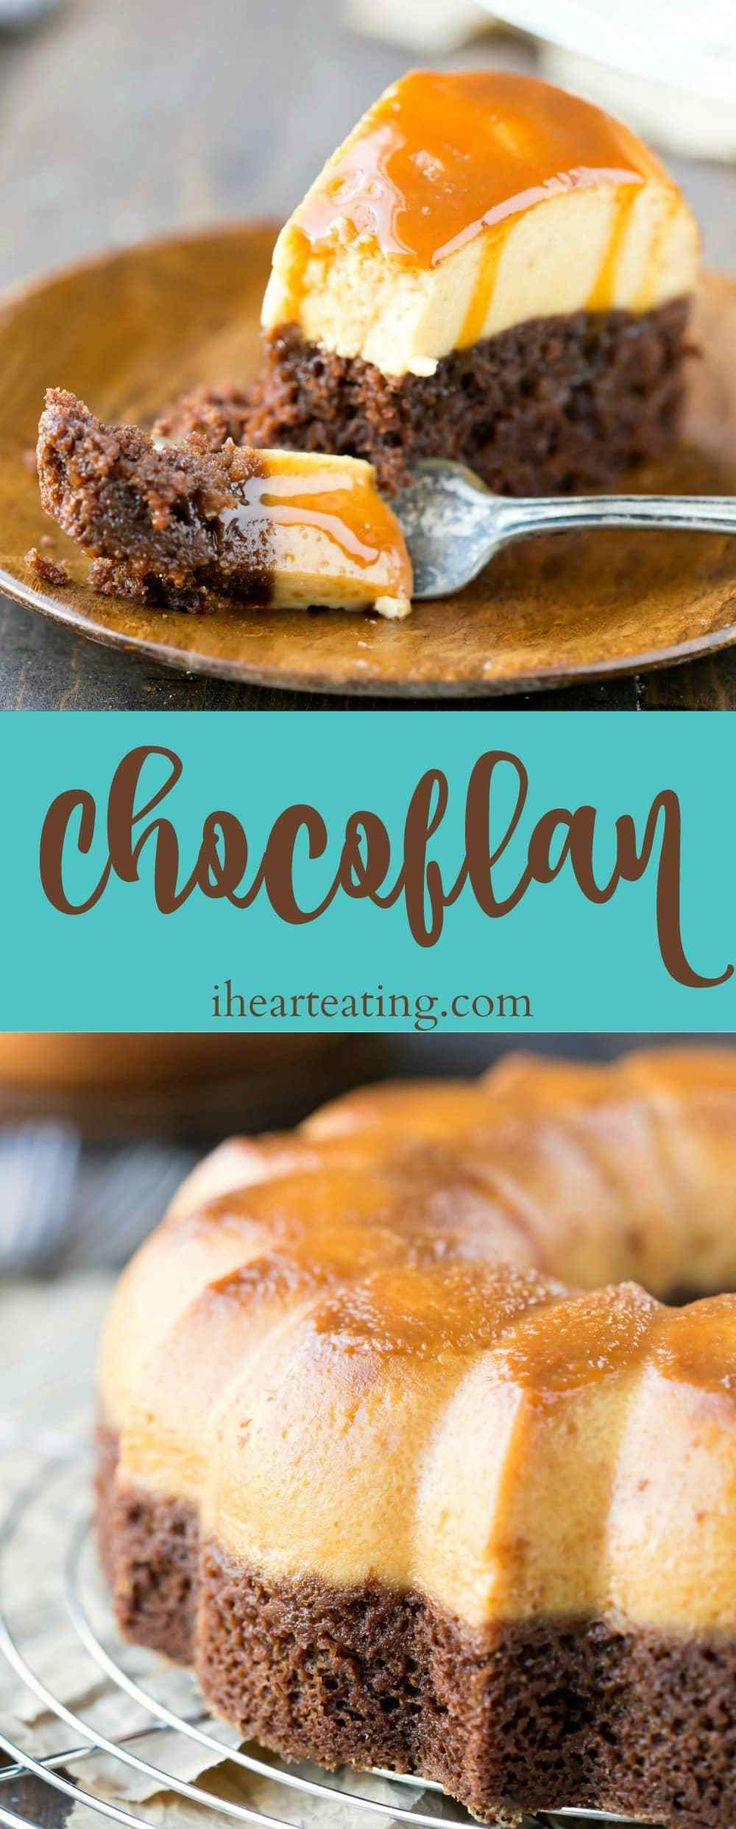 Chocoflan Recipe - part chocolate cake, part creamy flan. This is the perfect Cinco de Mayo dinner dessert!